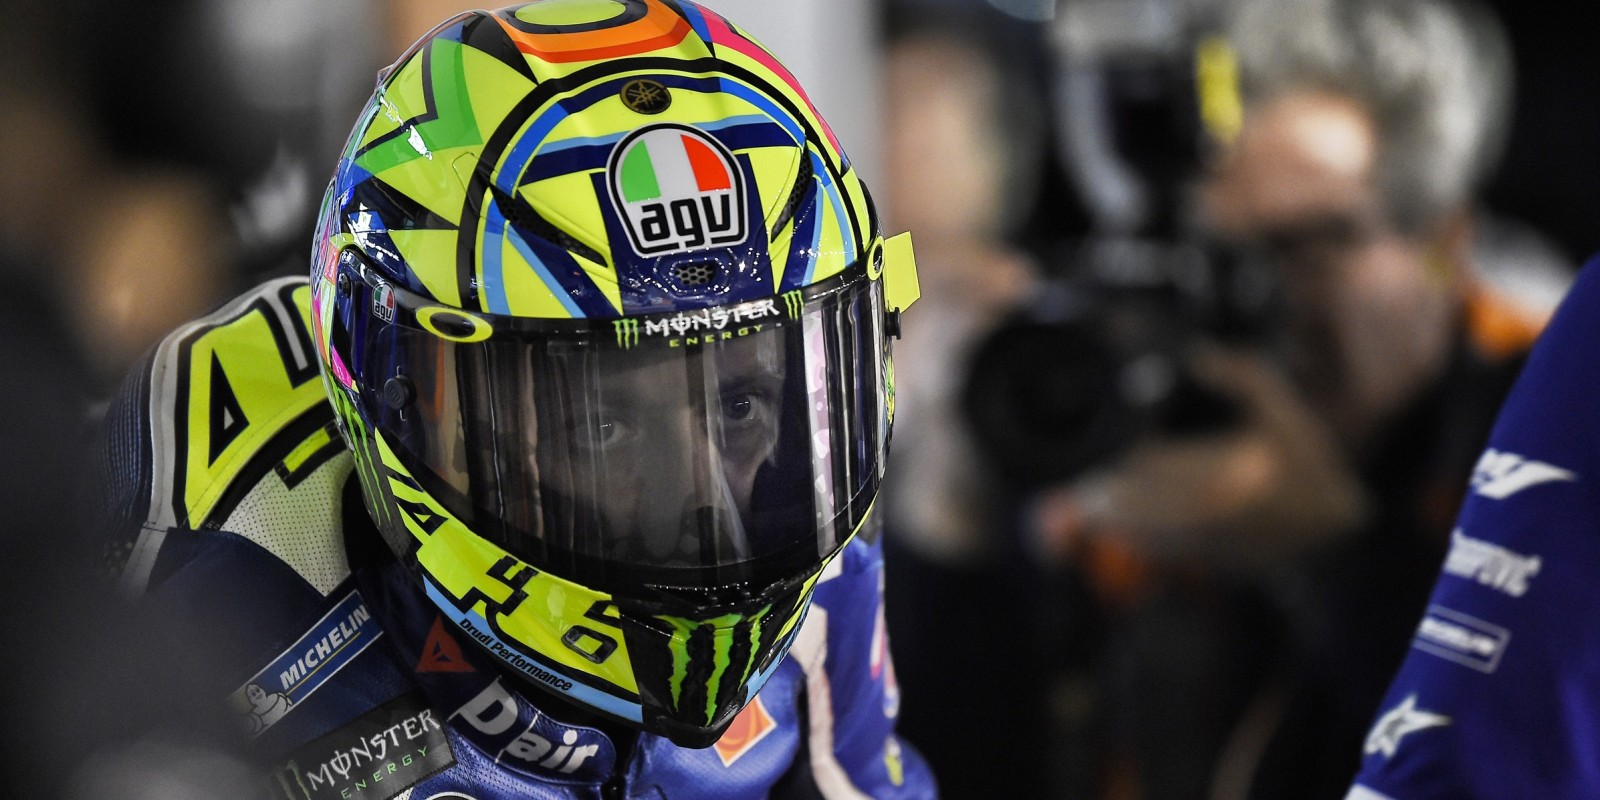 Valentino Rossi at the 2016 Commercial Bank MotoGP Grand Prix of Qatar